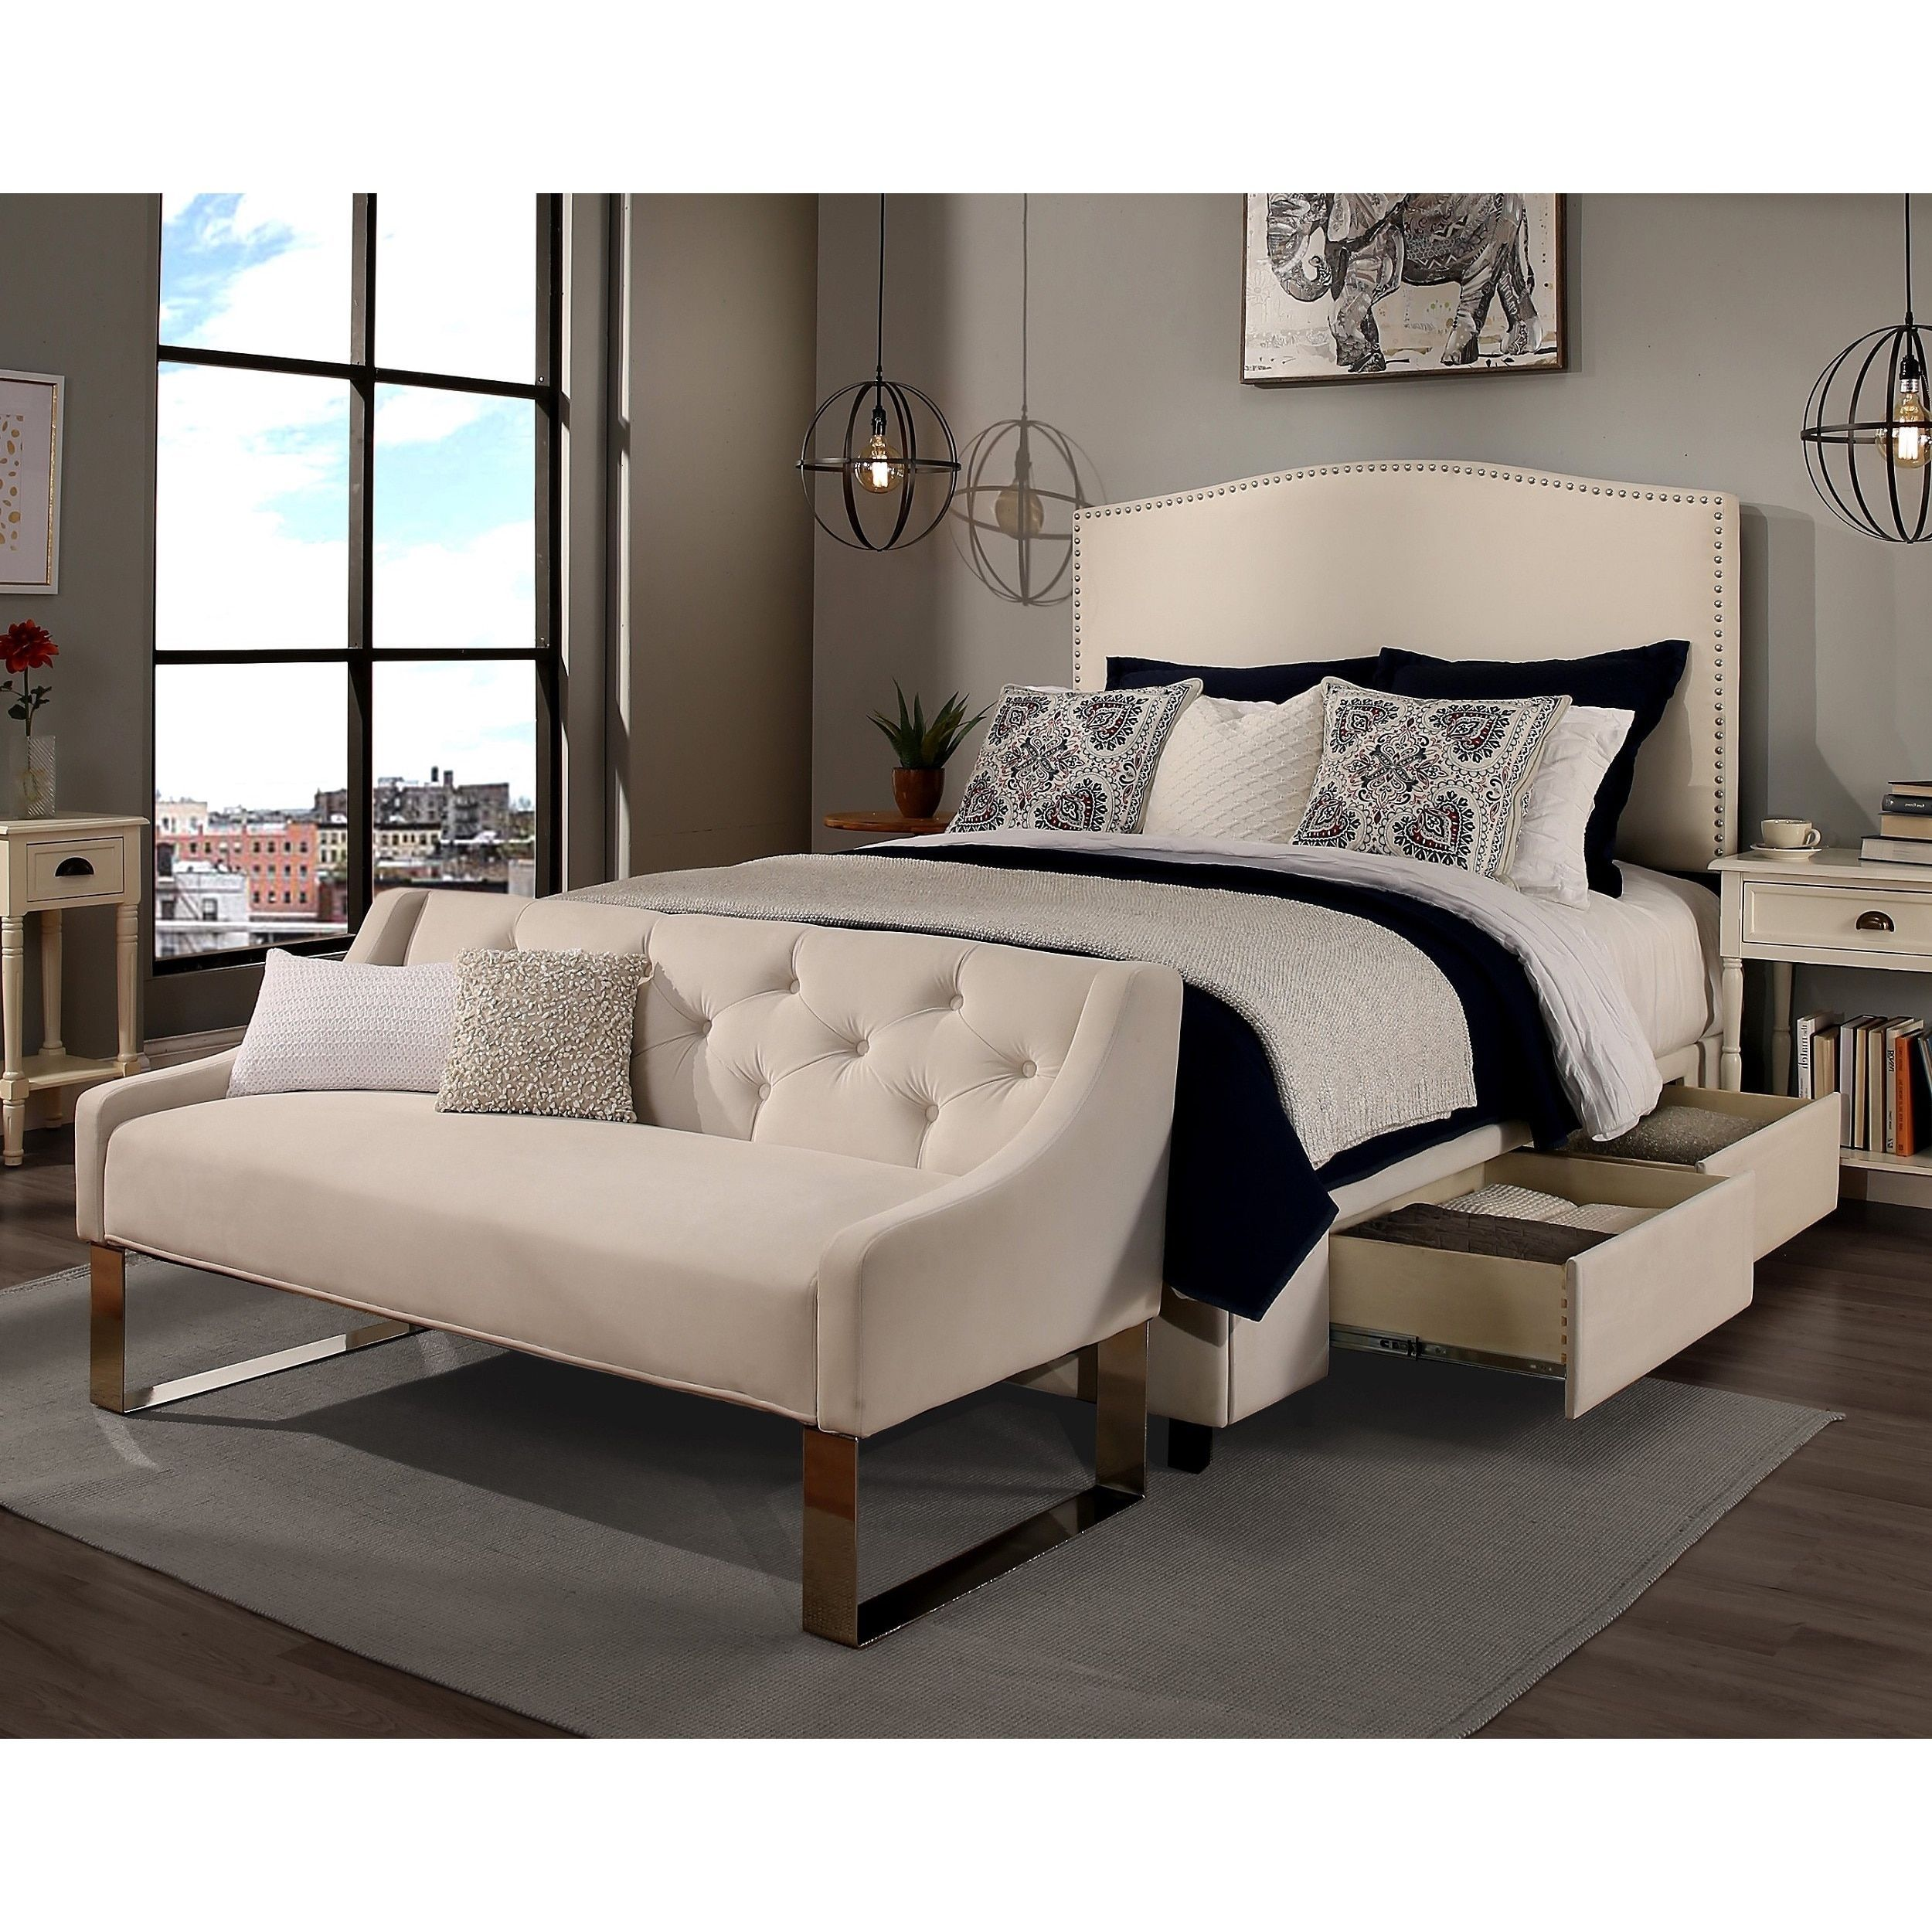 king headboard idea design espresso of home queen frame bookcase full and size with set storage bed